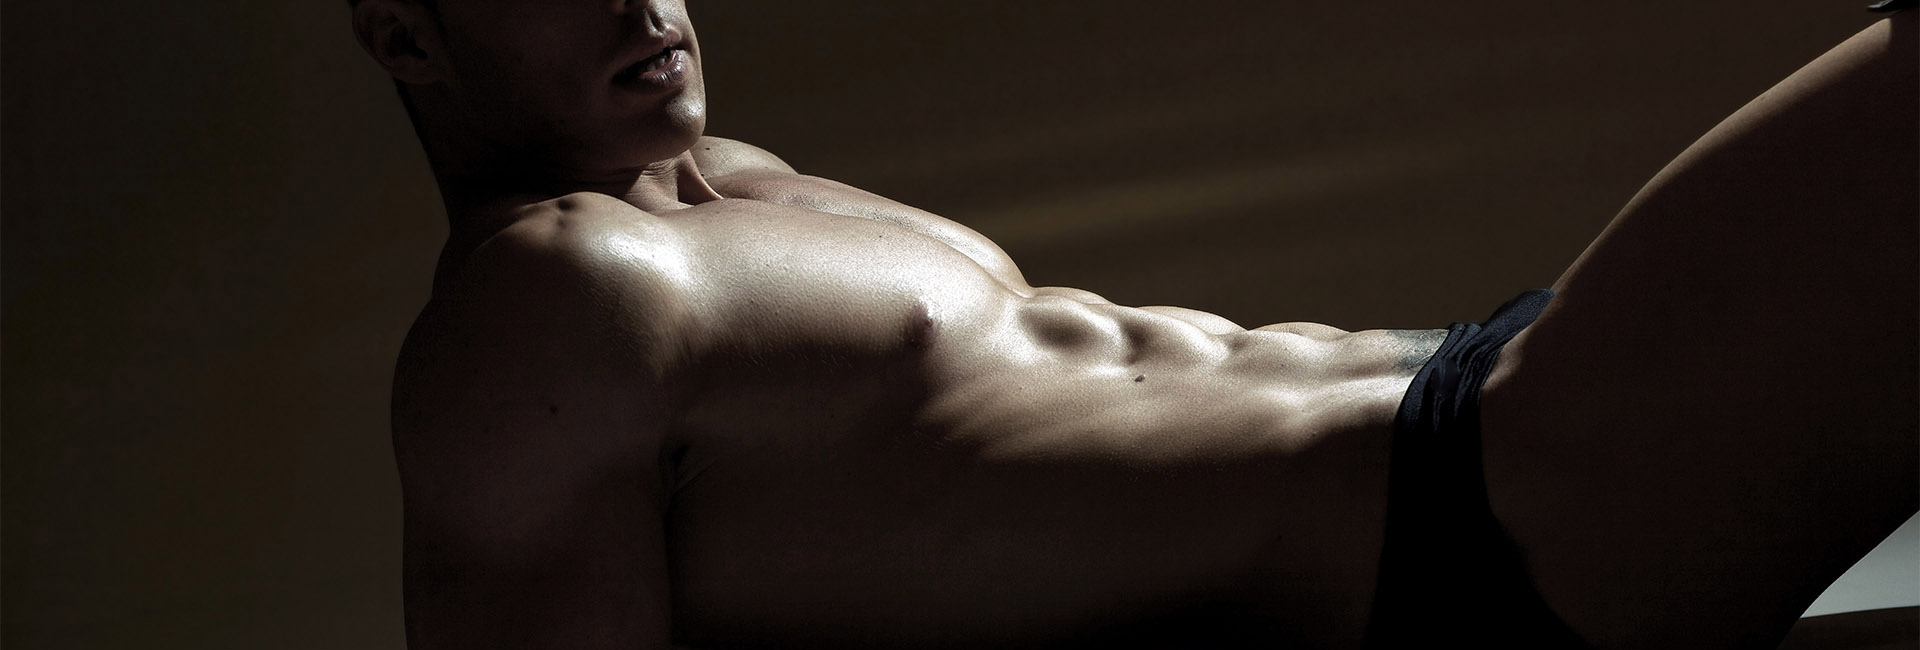 Athletic naked hair free male torso with rippling abdominals side on lying pose.